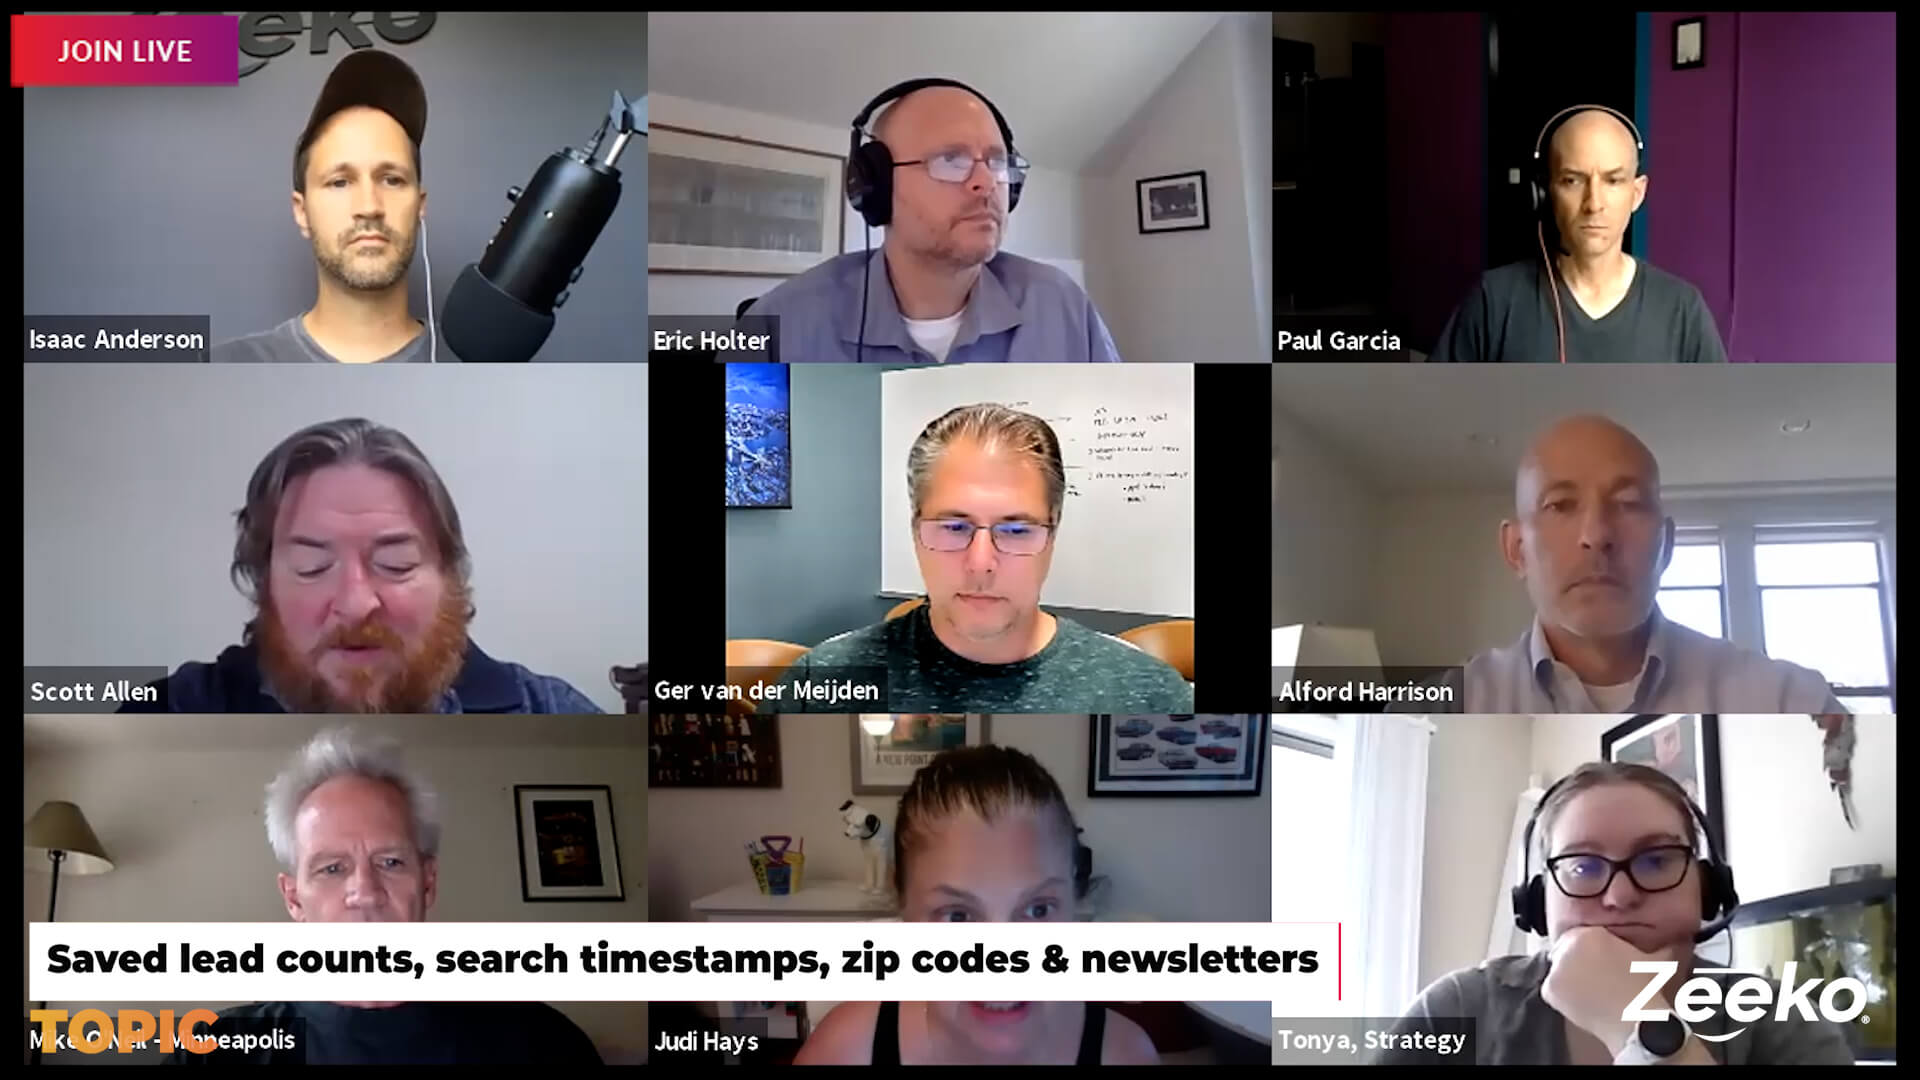 Humpday Hangout - Linkedin Virtual 'Rona Events, Saved Search Timestamps, Stories, and more